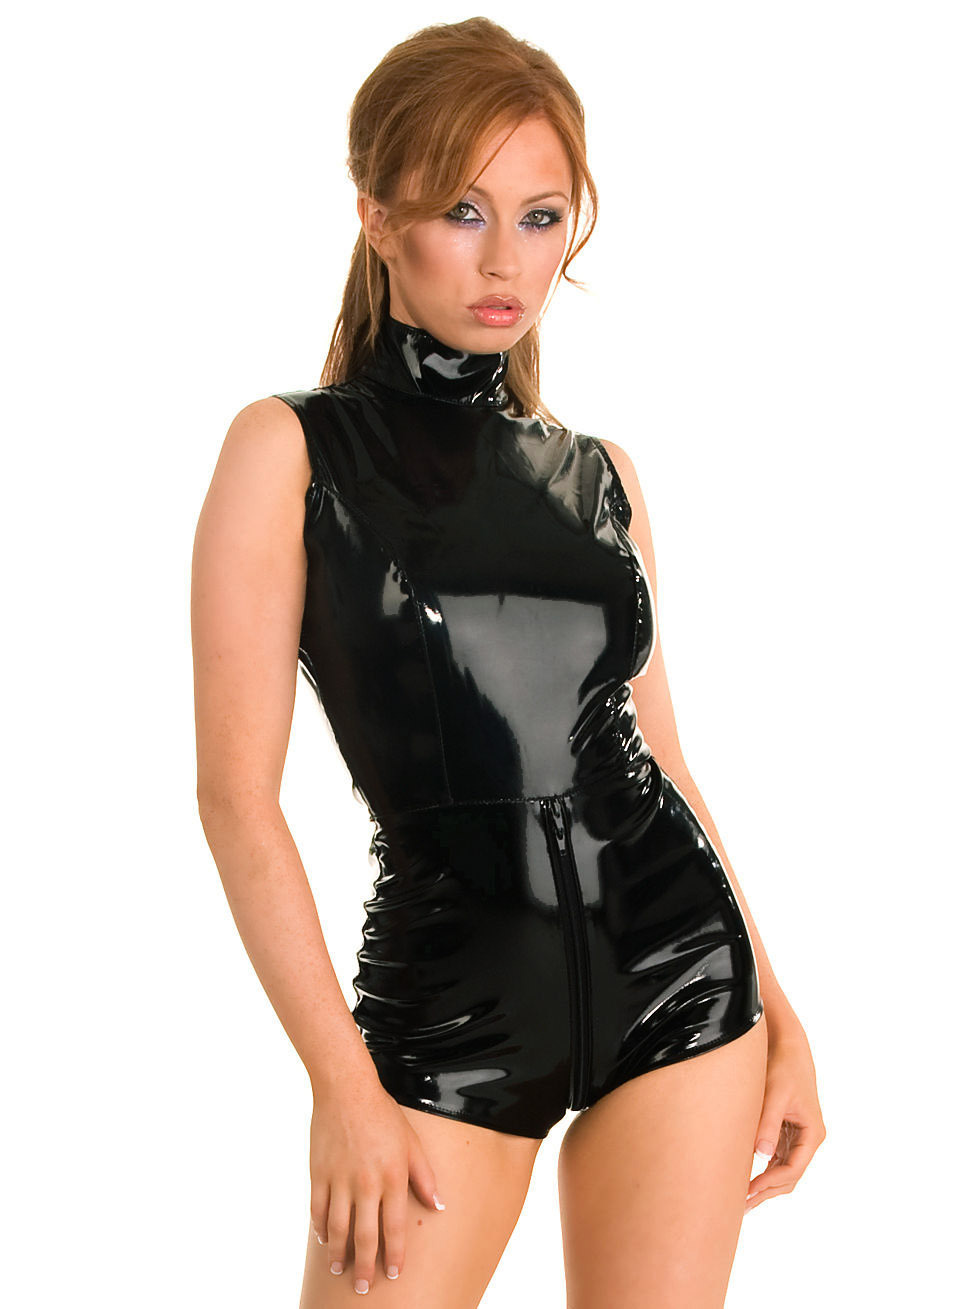 Leather Pvc Lingerie 58